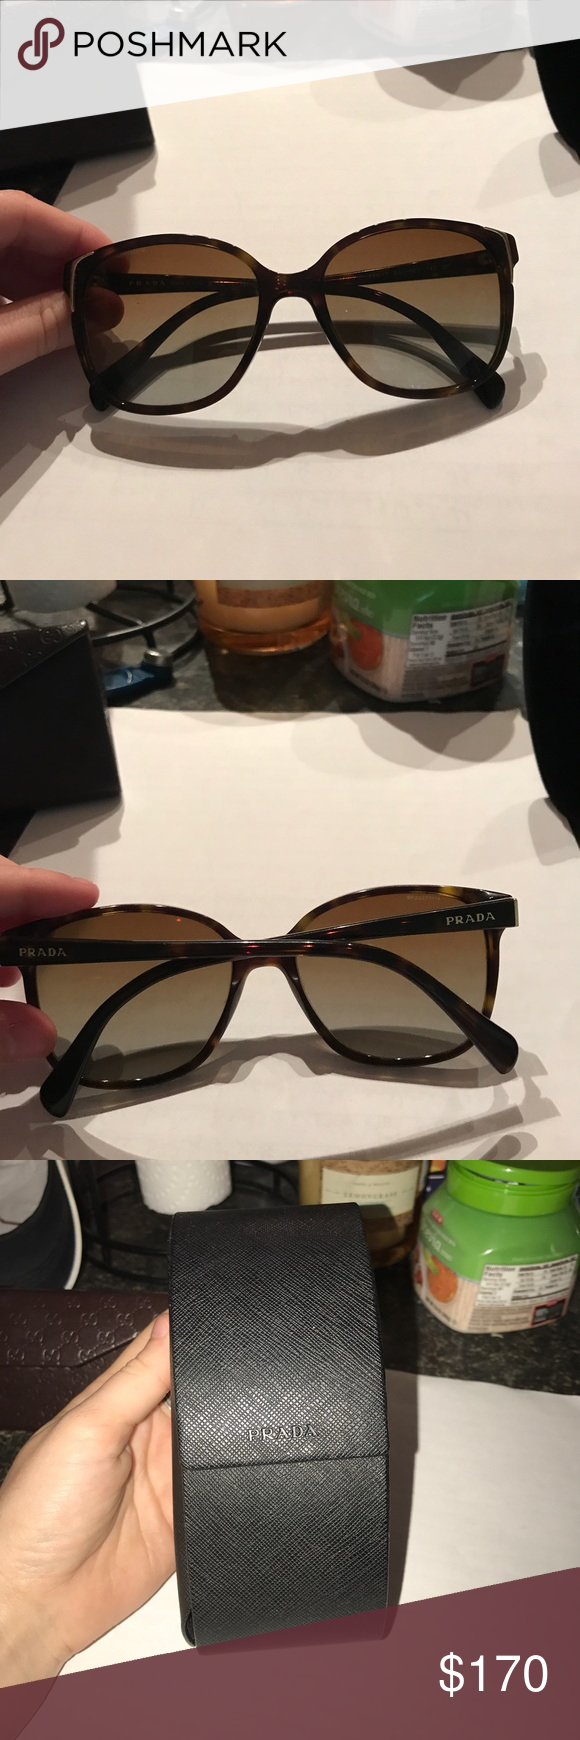 a719e1ab6a5 Small scratch on right lense. Comes with case but case is slightly bent. Prada  Accessories Sunglasses. Prada PR 01OS polarized ...